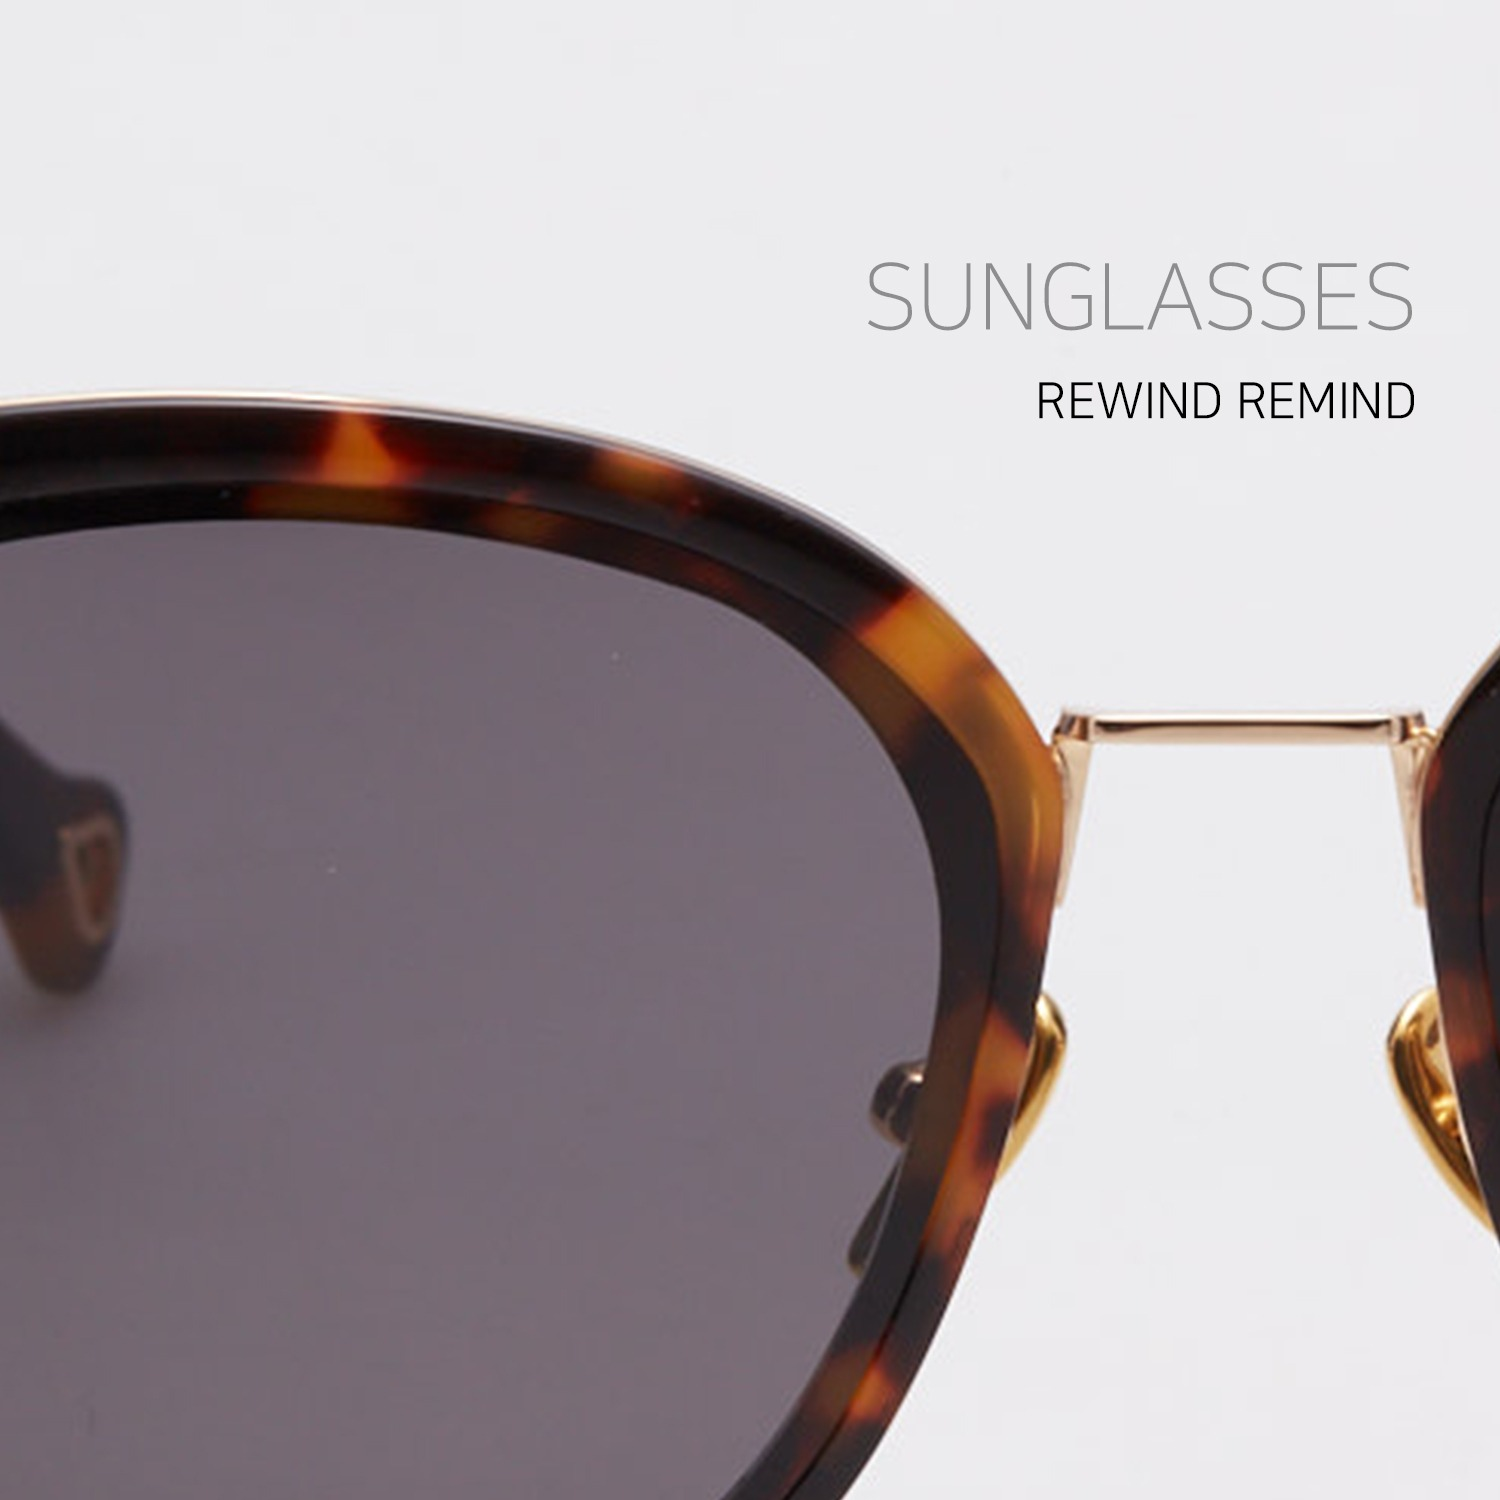 SUNGLASSES _ REWIND REMIND